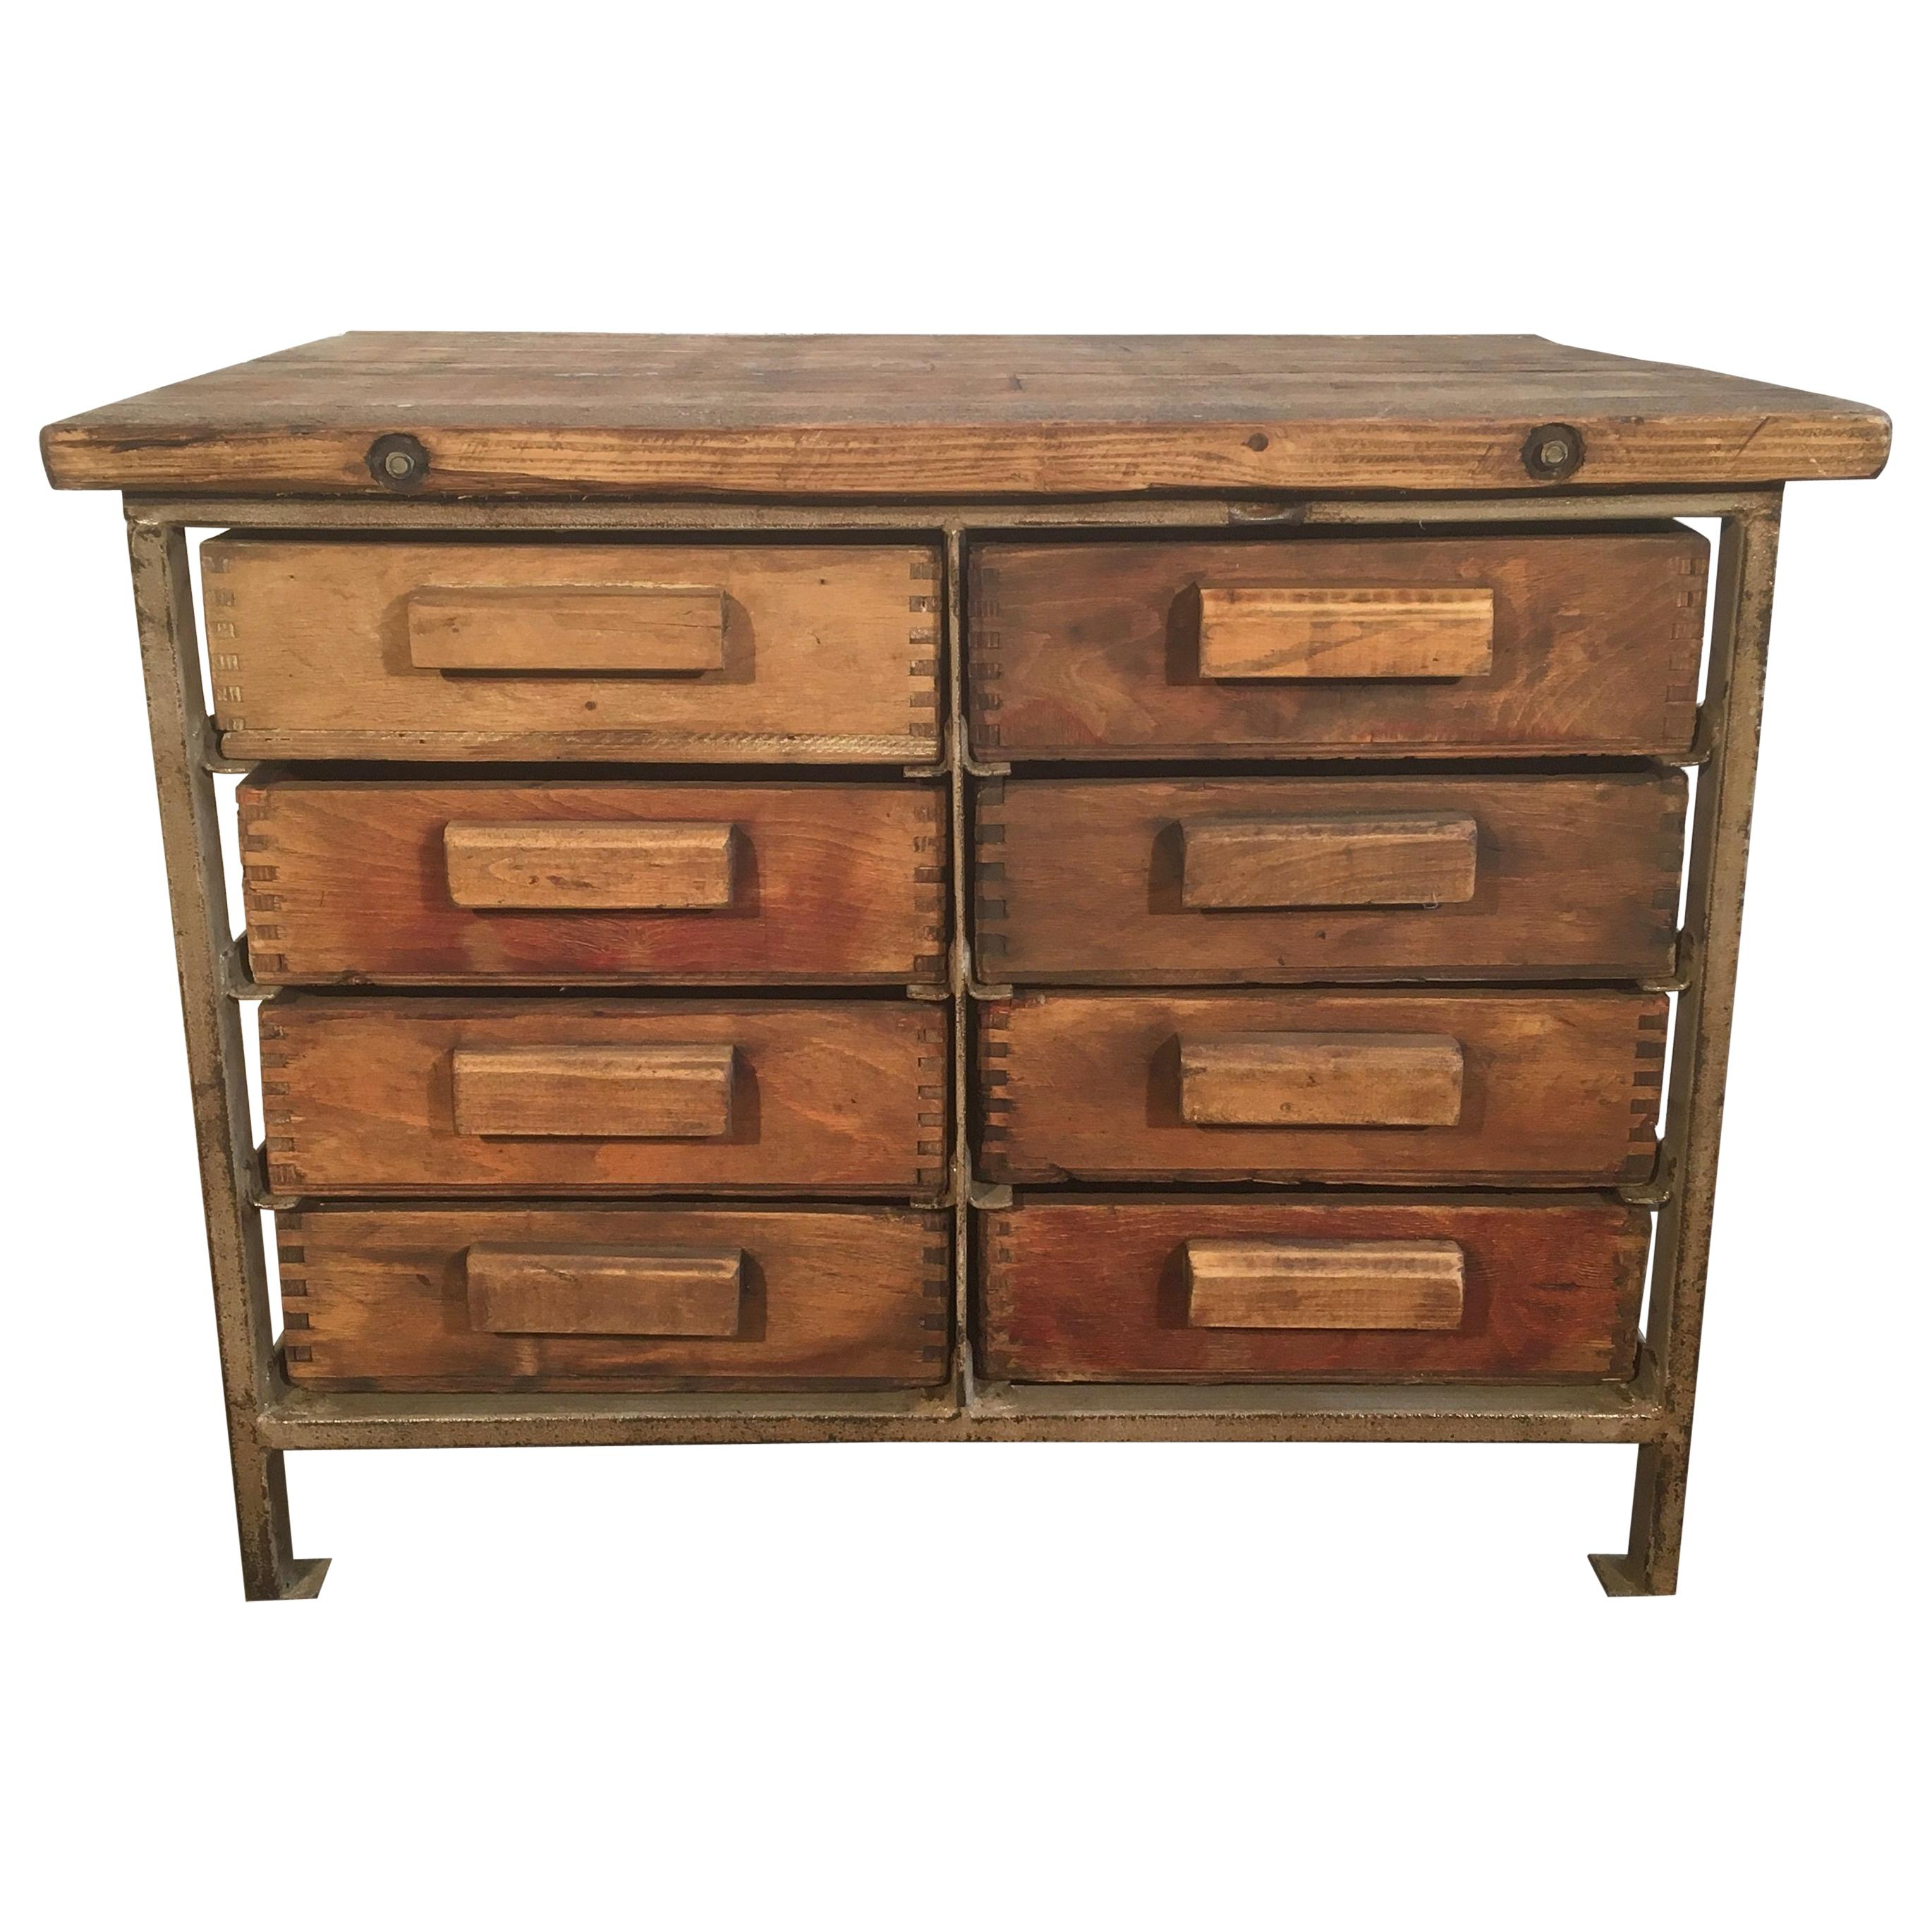 Vintage Industrial Chest Of Drawers, 1950s For Sale